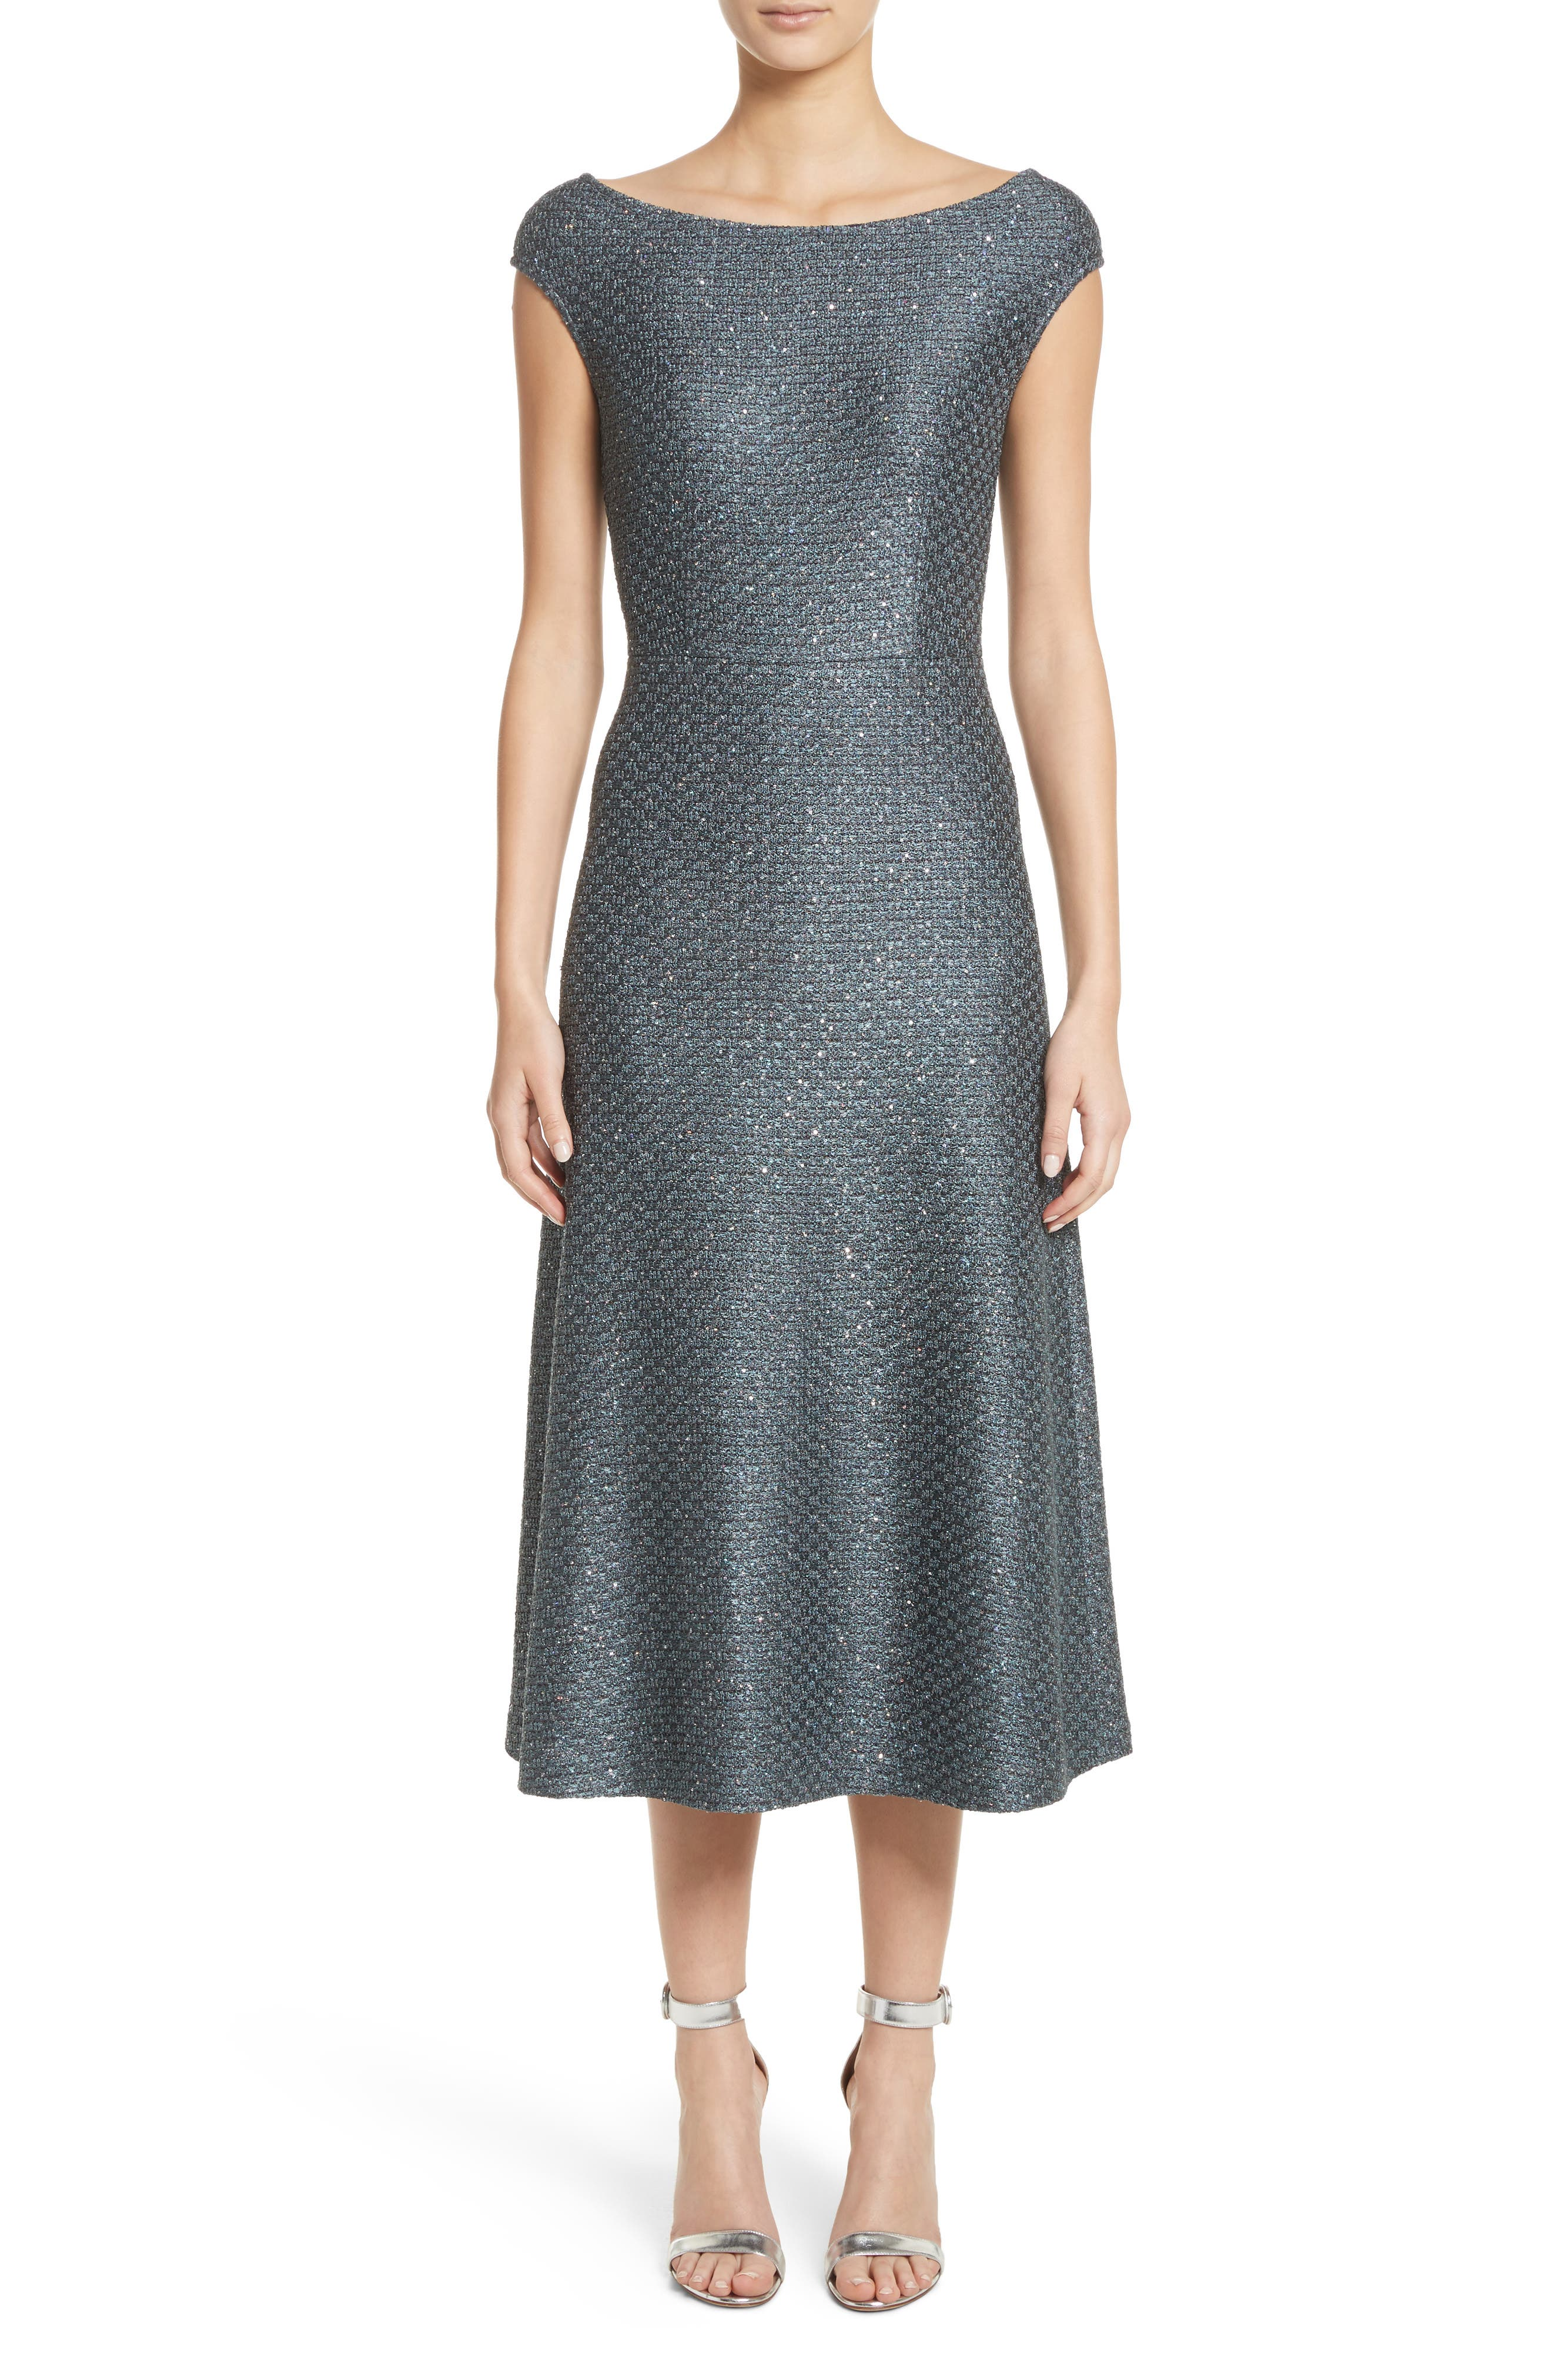 Alternate Image 1 Selected - St. John Collection Sequin Knit Midi Dress